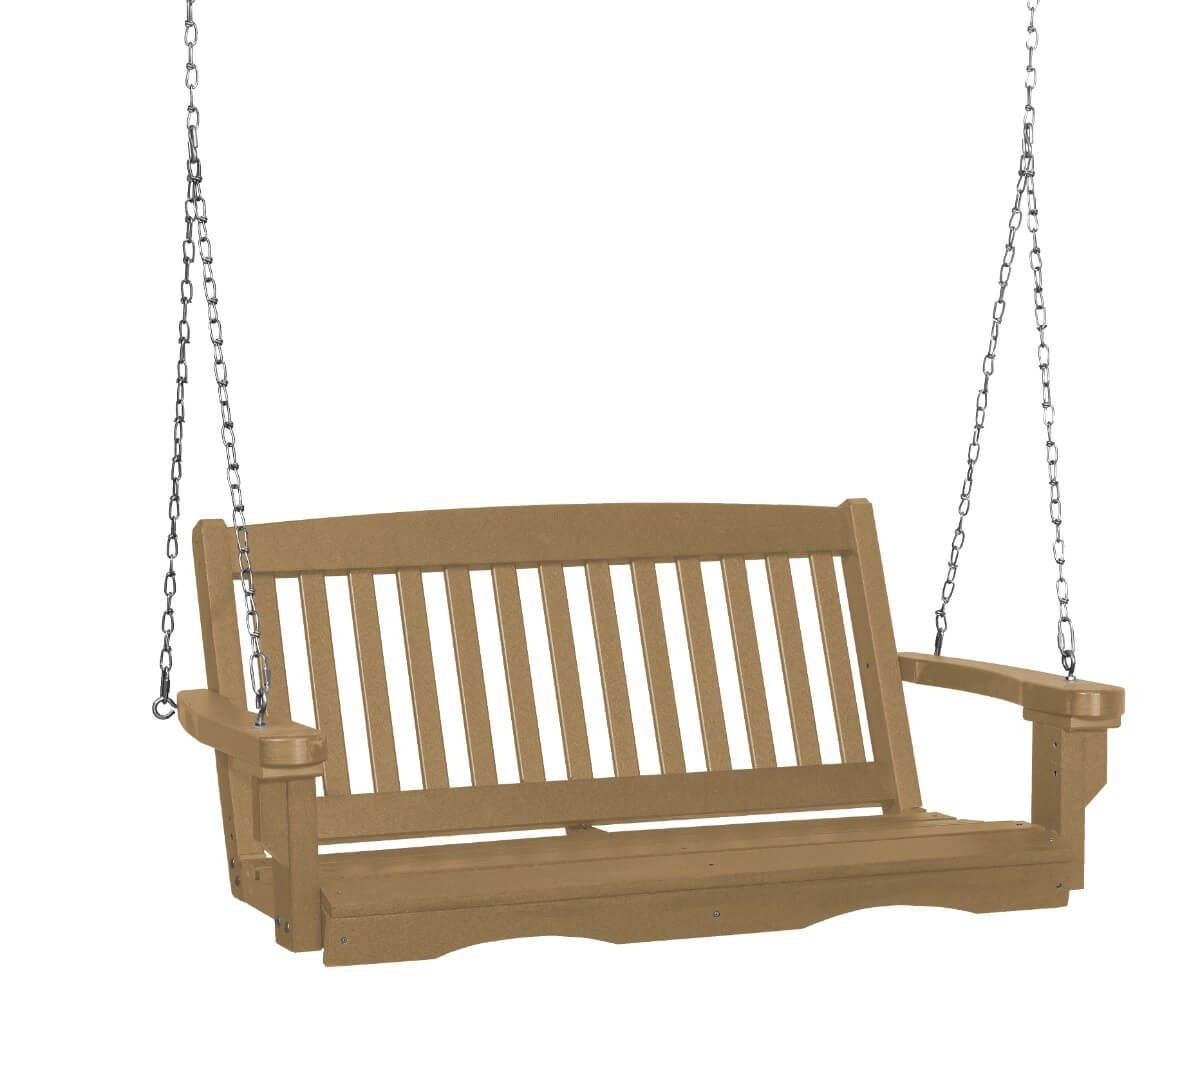 Weathered Wood Aniva Porch Swing